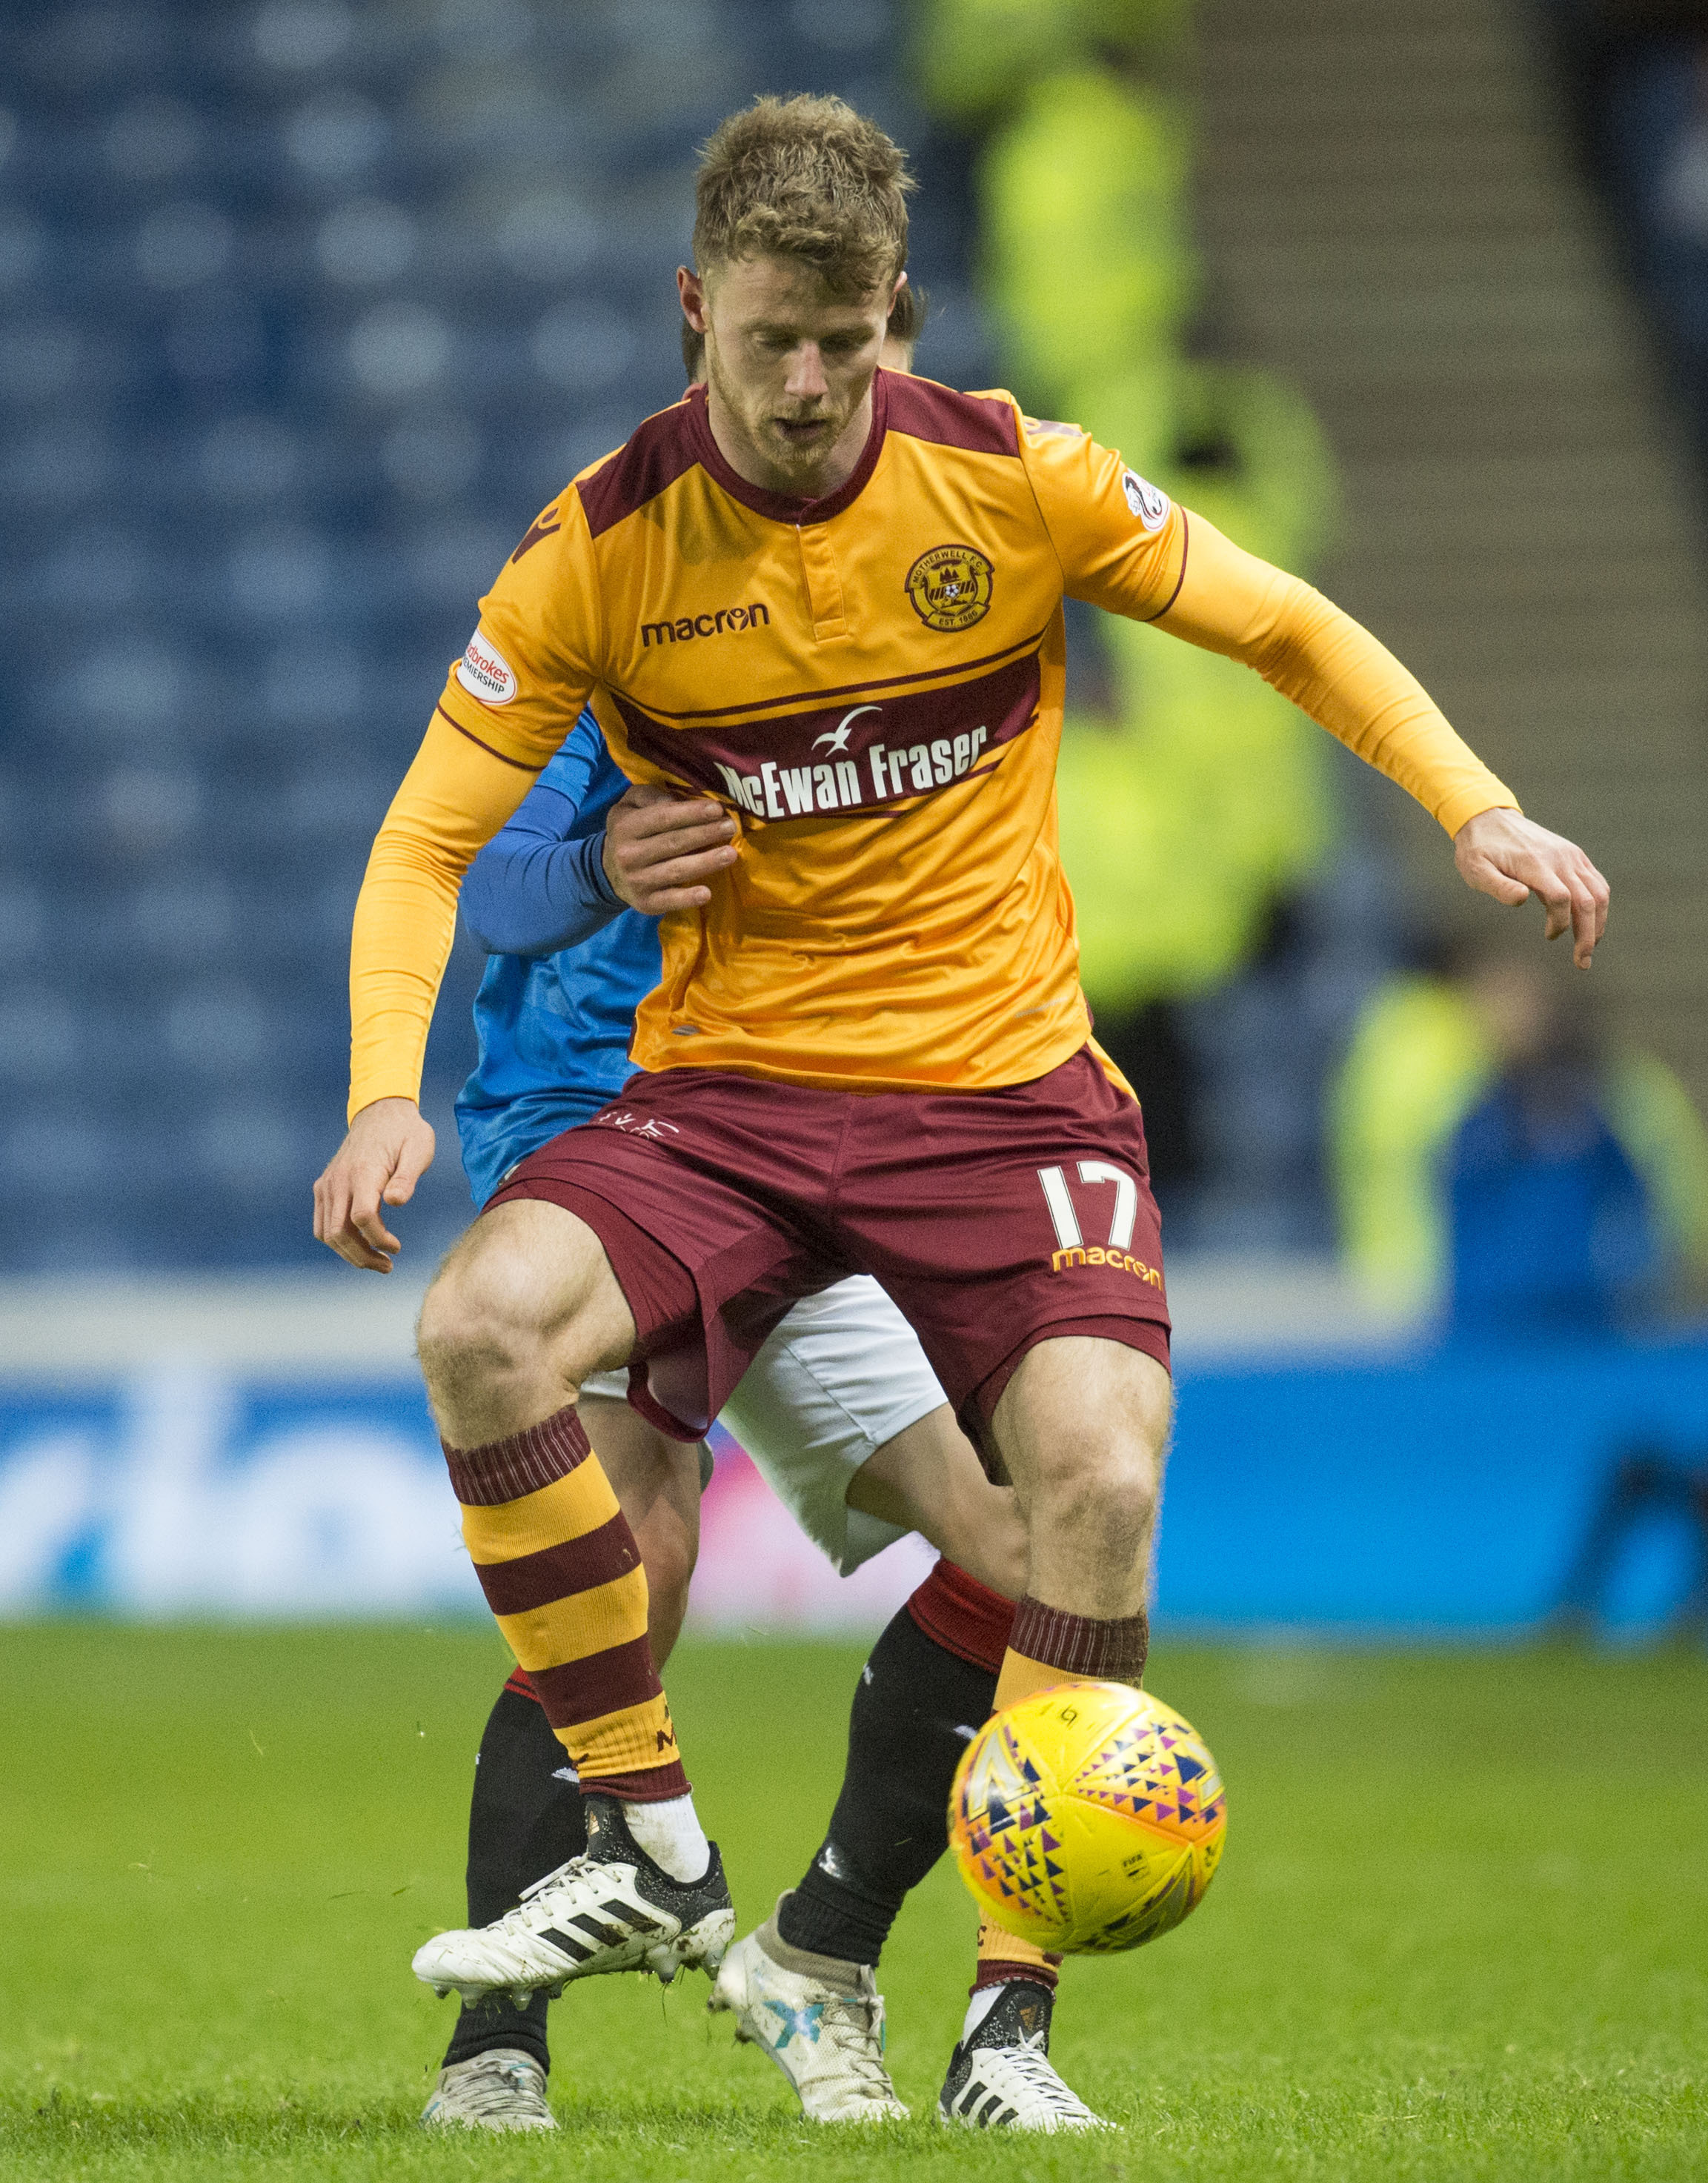 27/12/17 LADBROKES PREMIERSHIP.  RANGERS v MOTHERWELL (2-0).  IBROX - GLASGOW. Motherwell's Alex Fisher in action..